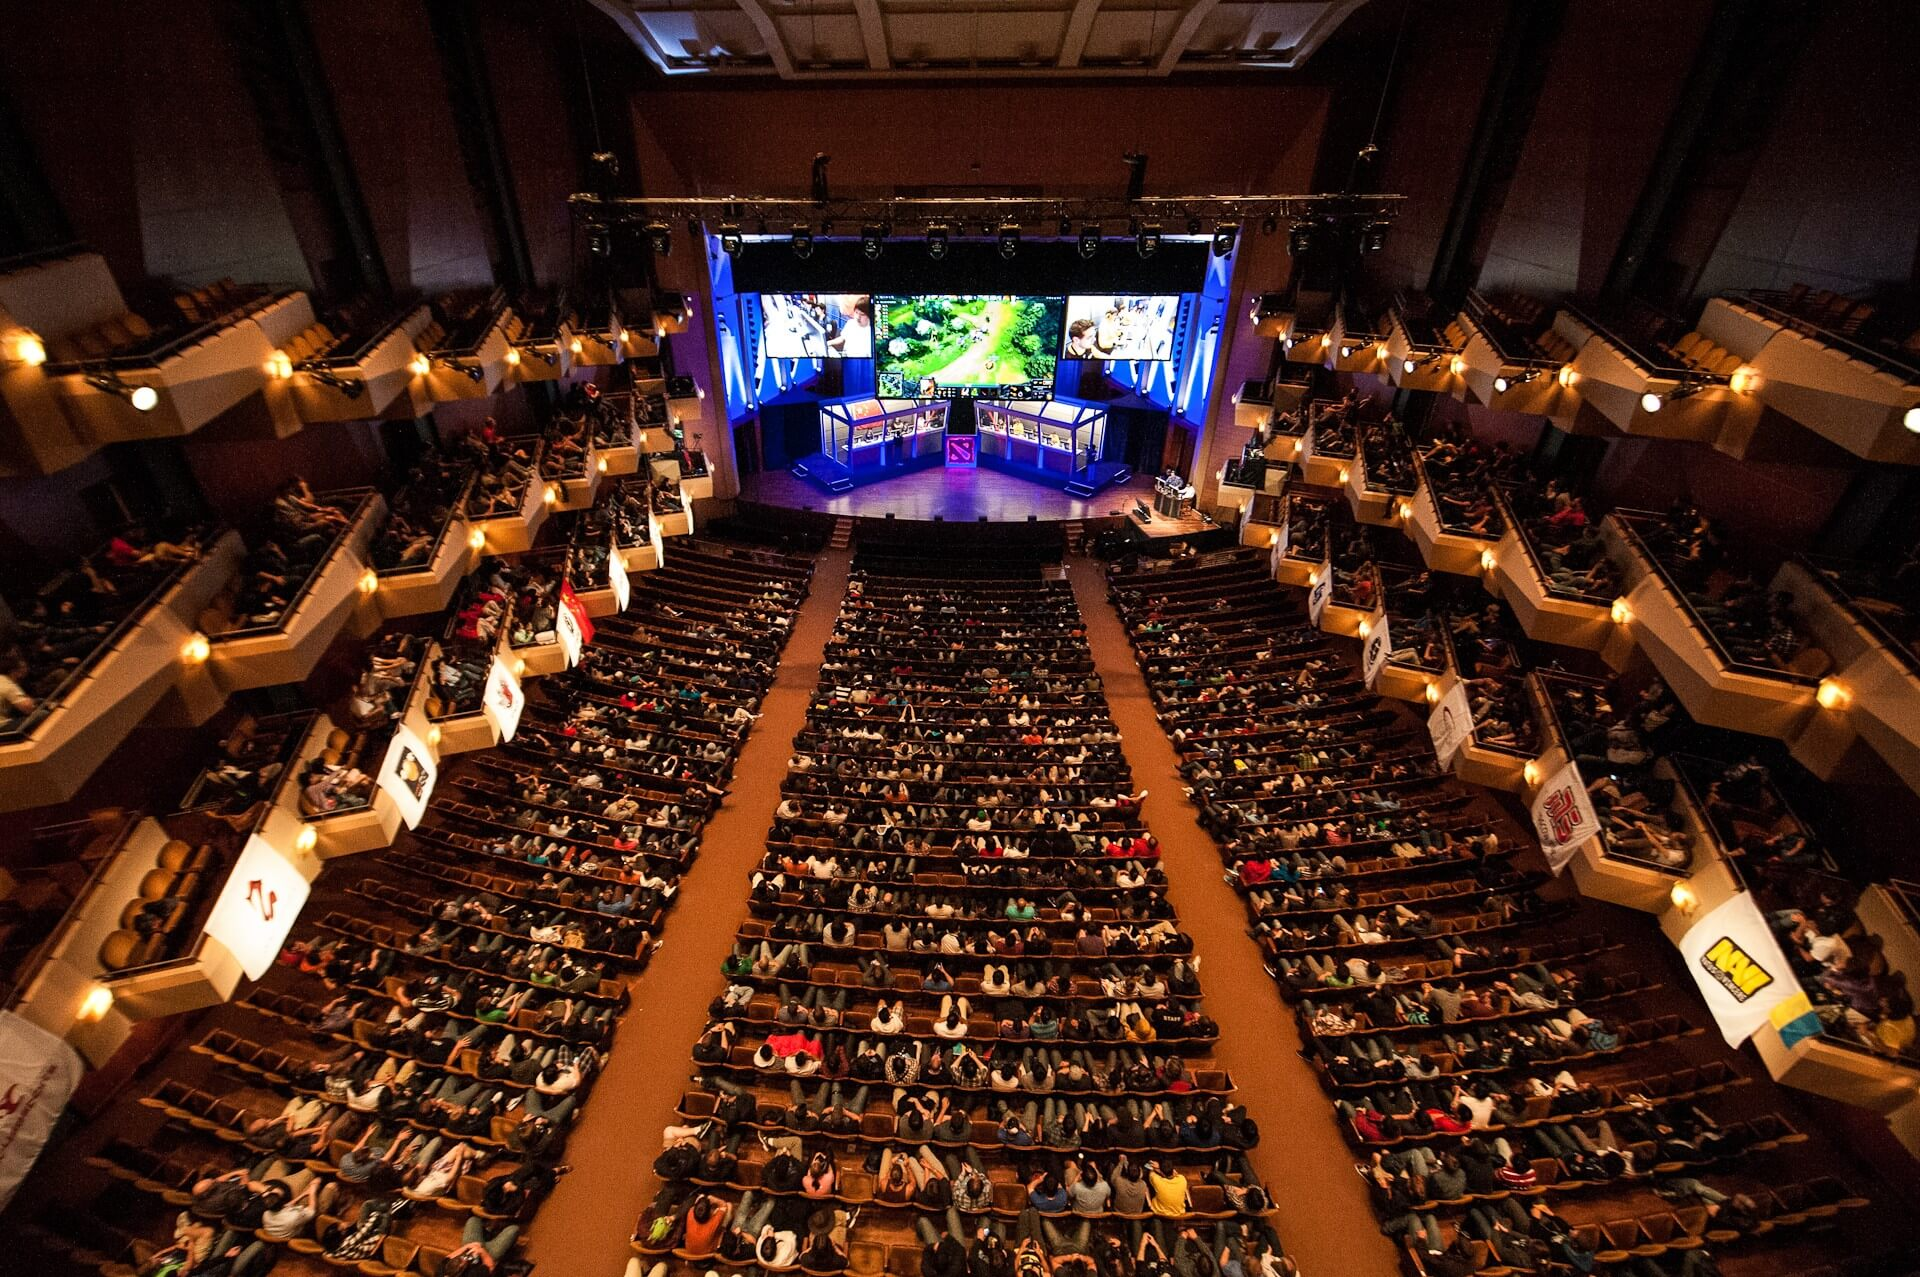 dota-2-the-international-2015-takes-on-3-8-august-in-seattle-469276-3